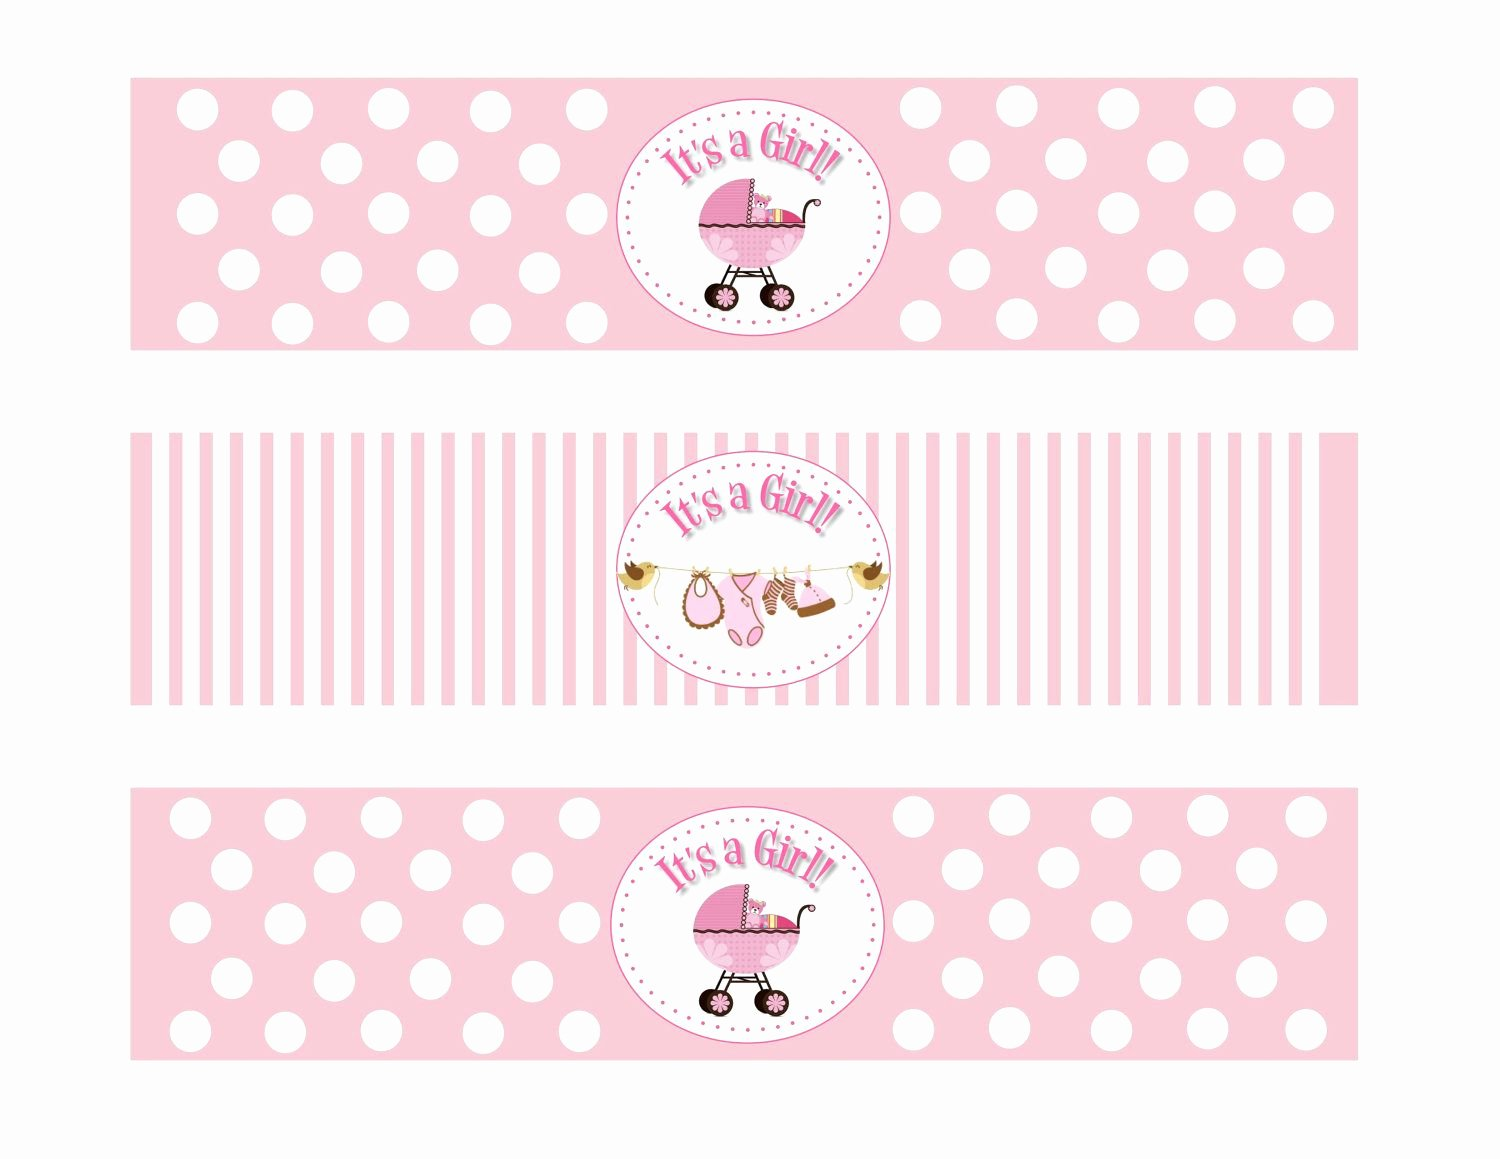 Baby Shower Water Bottle Labels Free Inspirational Baby Shower Water Bottle Labels